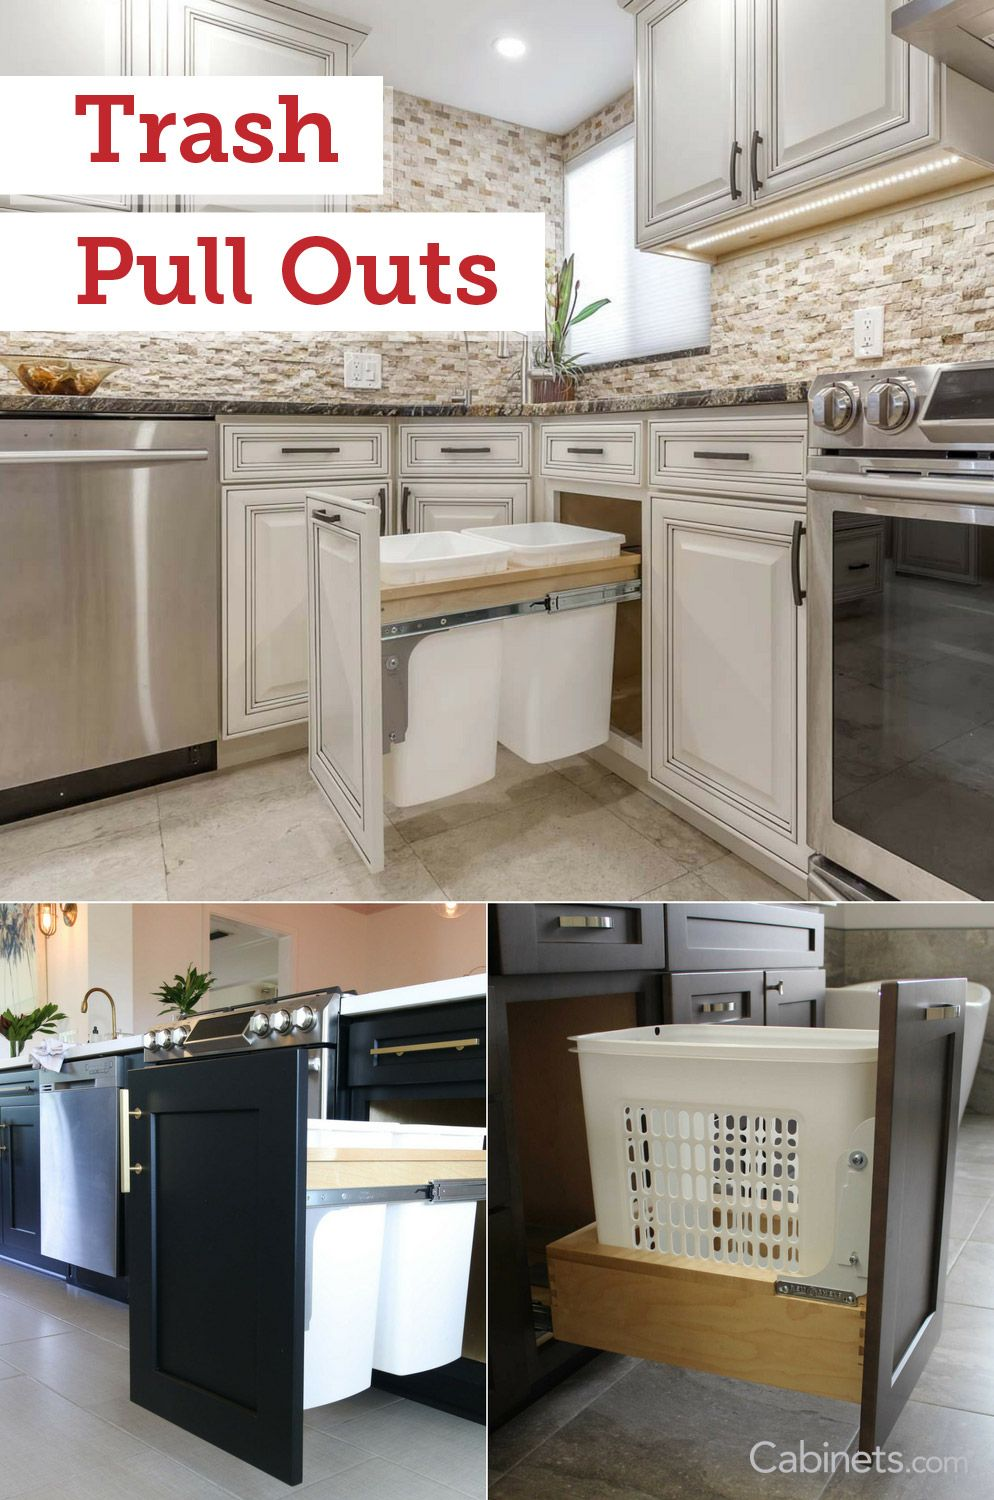 Adding A Trash Pull Out Is A Perfect Way Of Incorporating Style And Functionality To Your New Kitchen Cabinets Kitchen Design Home Kitchens Kitchen Remodel